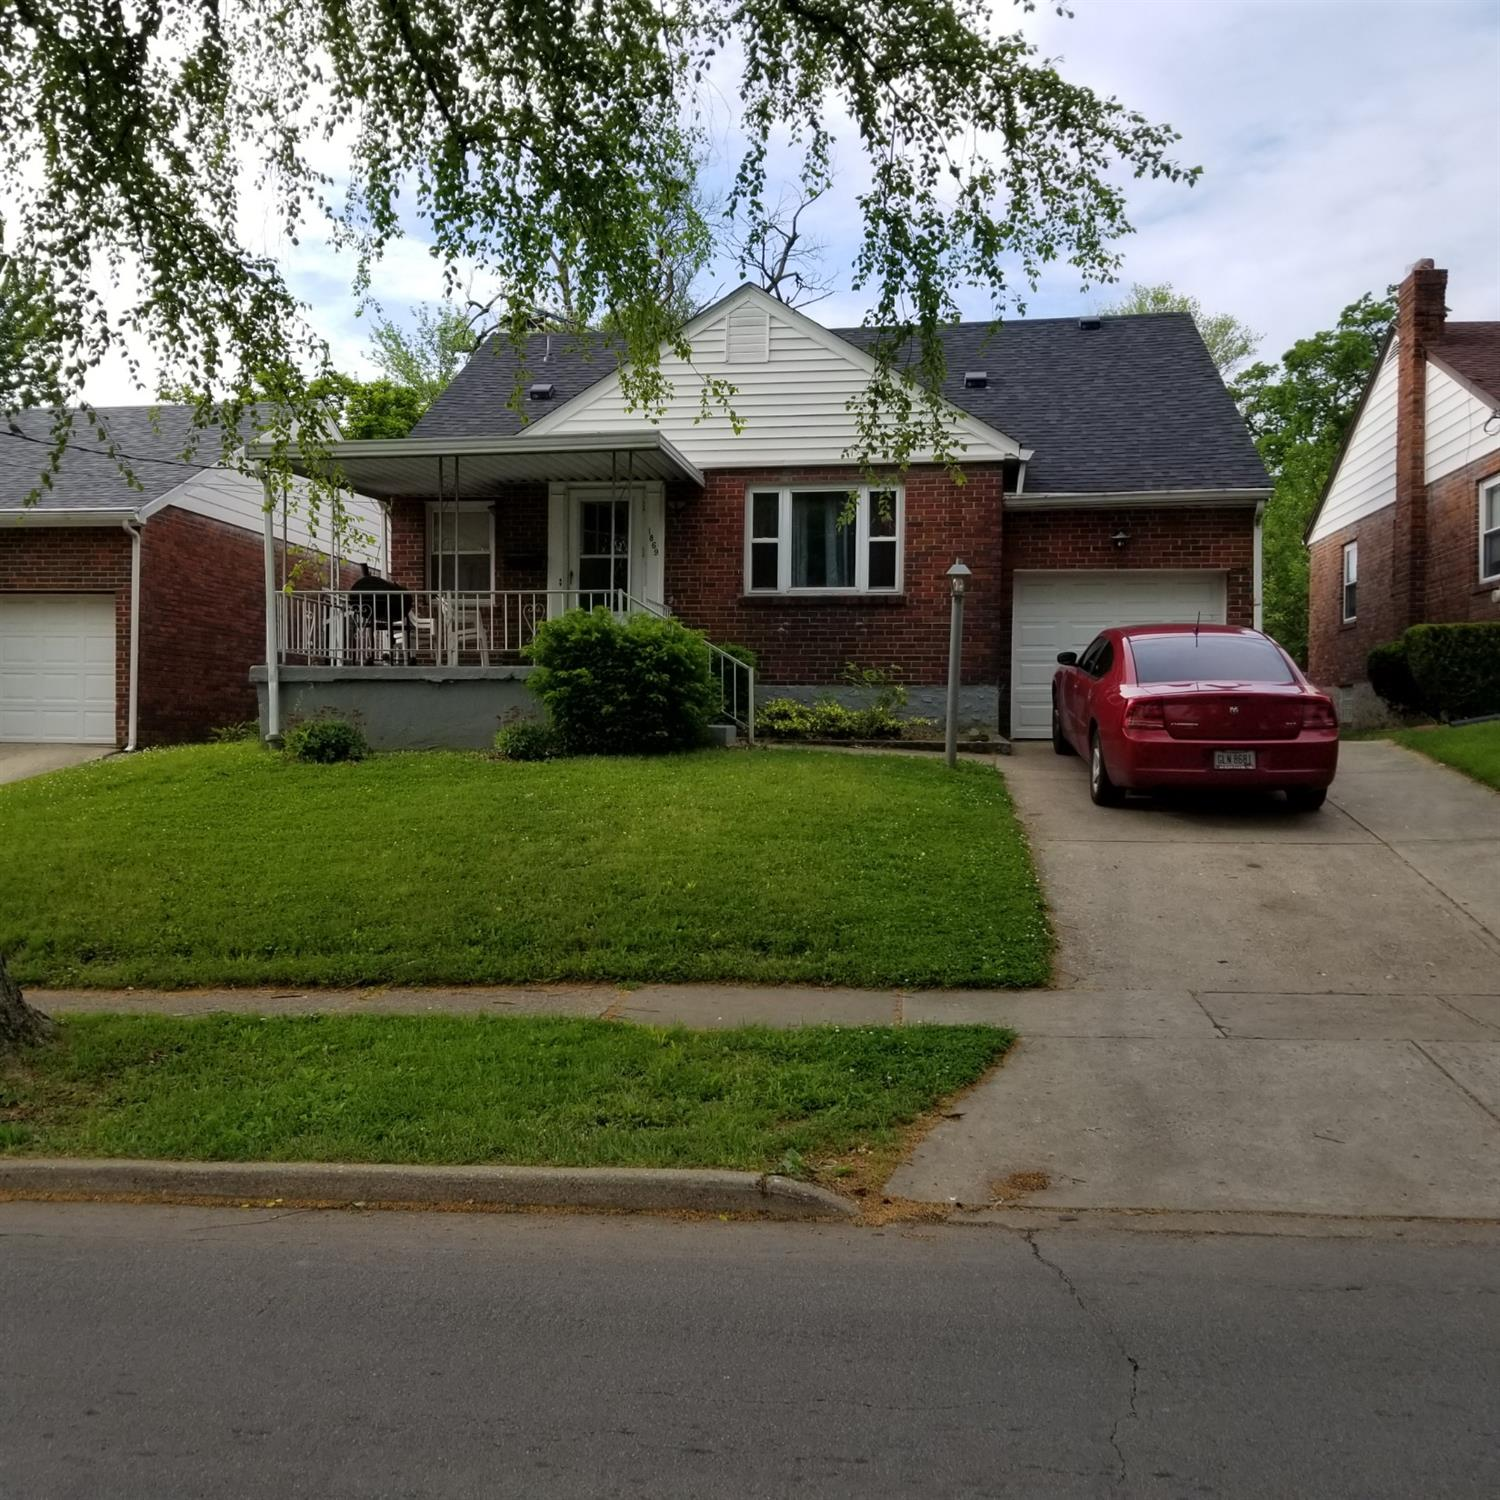 Photo 1 for 1869 Sunnybrook Dr Roselawn, OH 45237